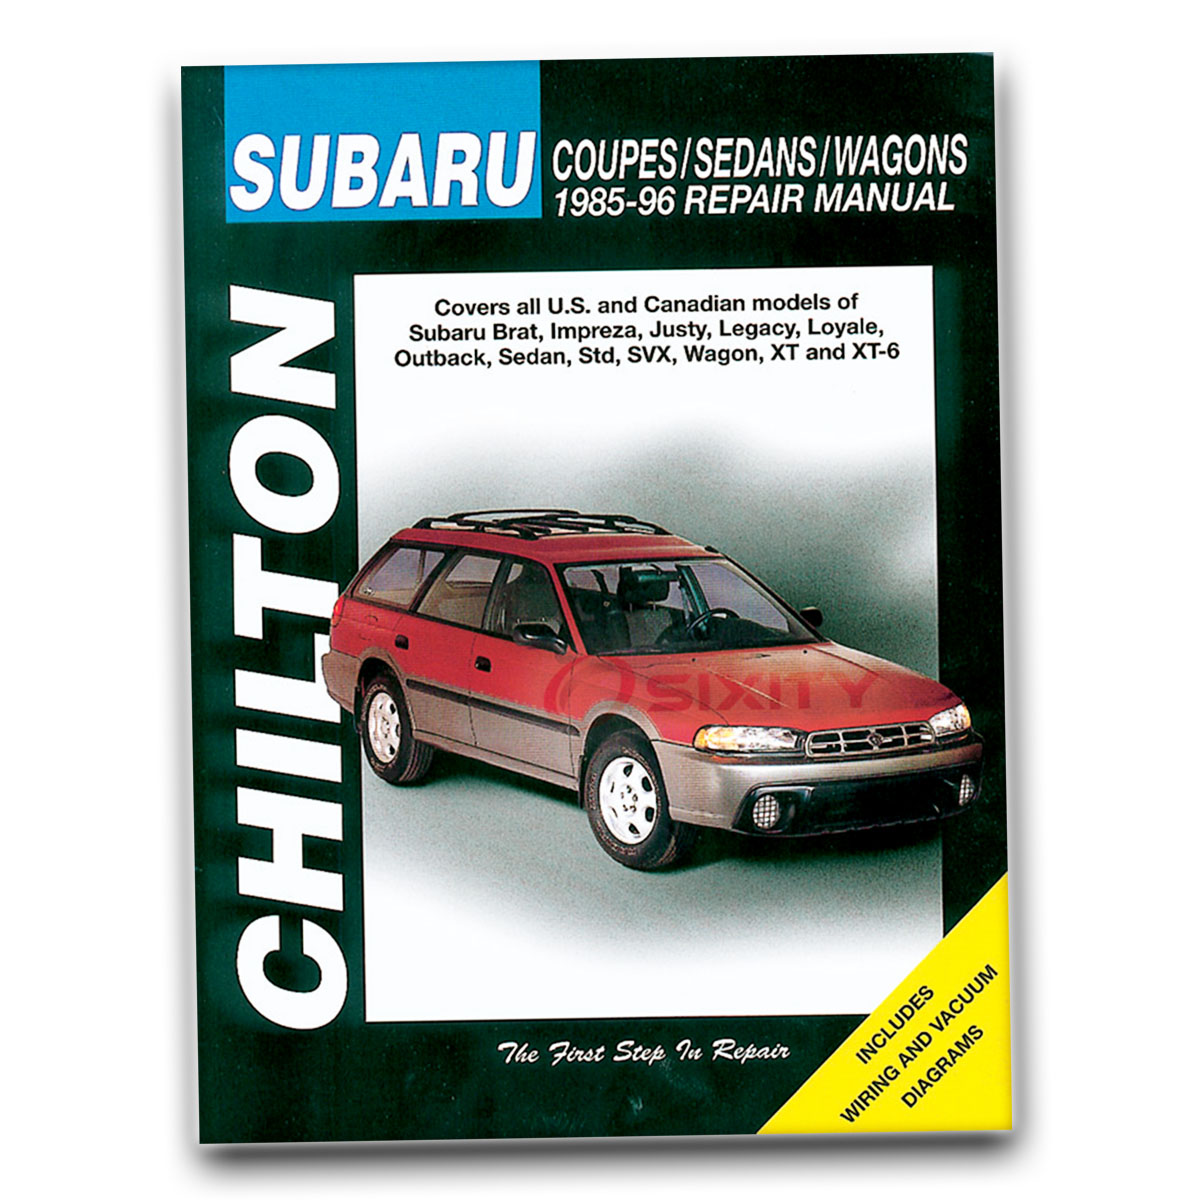 1990 Subaru Justy Wiring Diagram Real Legacy Engine Chilton Repair Manual For Dl Rs Gl Shop Service Garage Rh Ebay Com 1987 1988